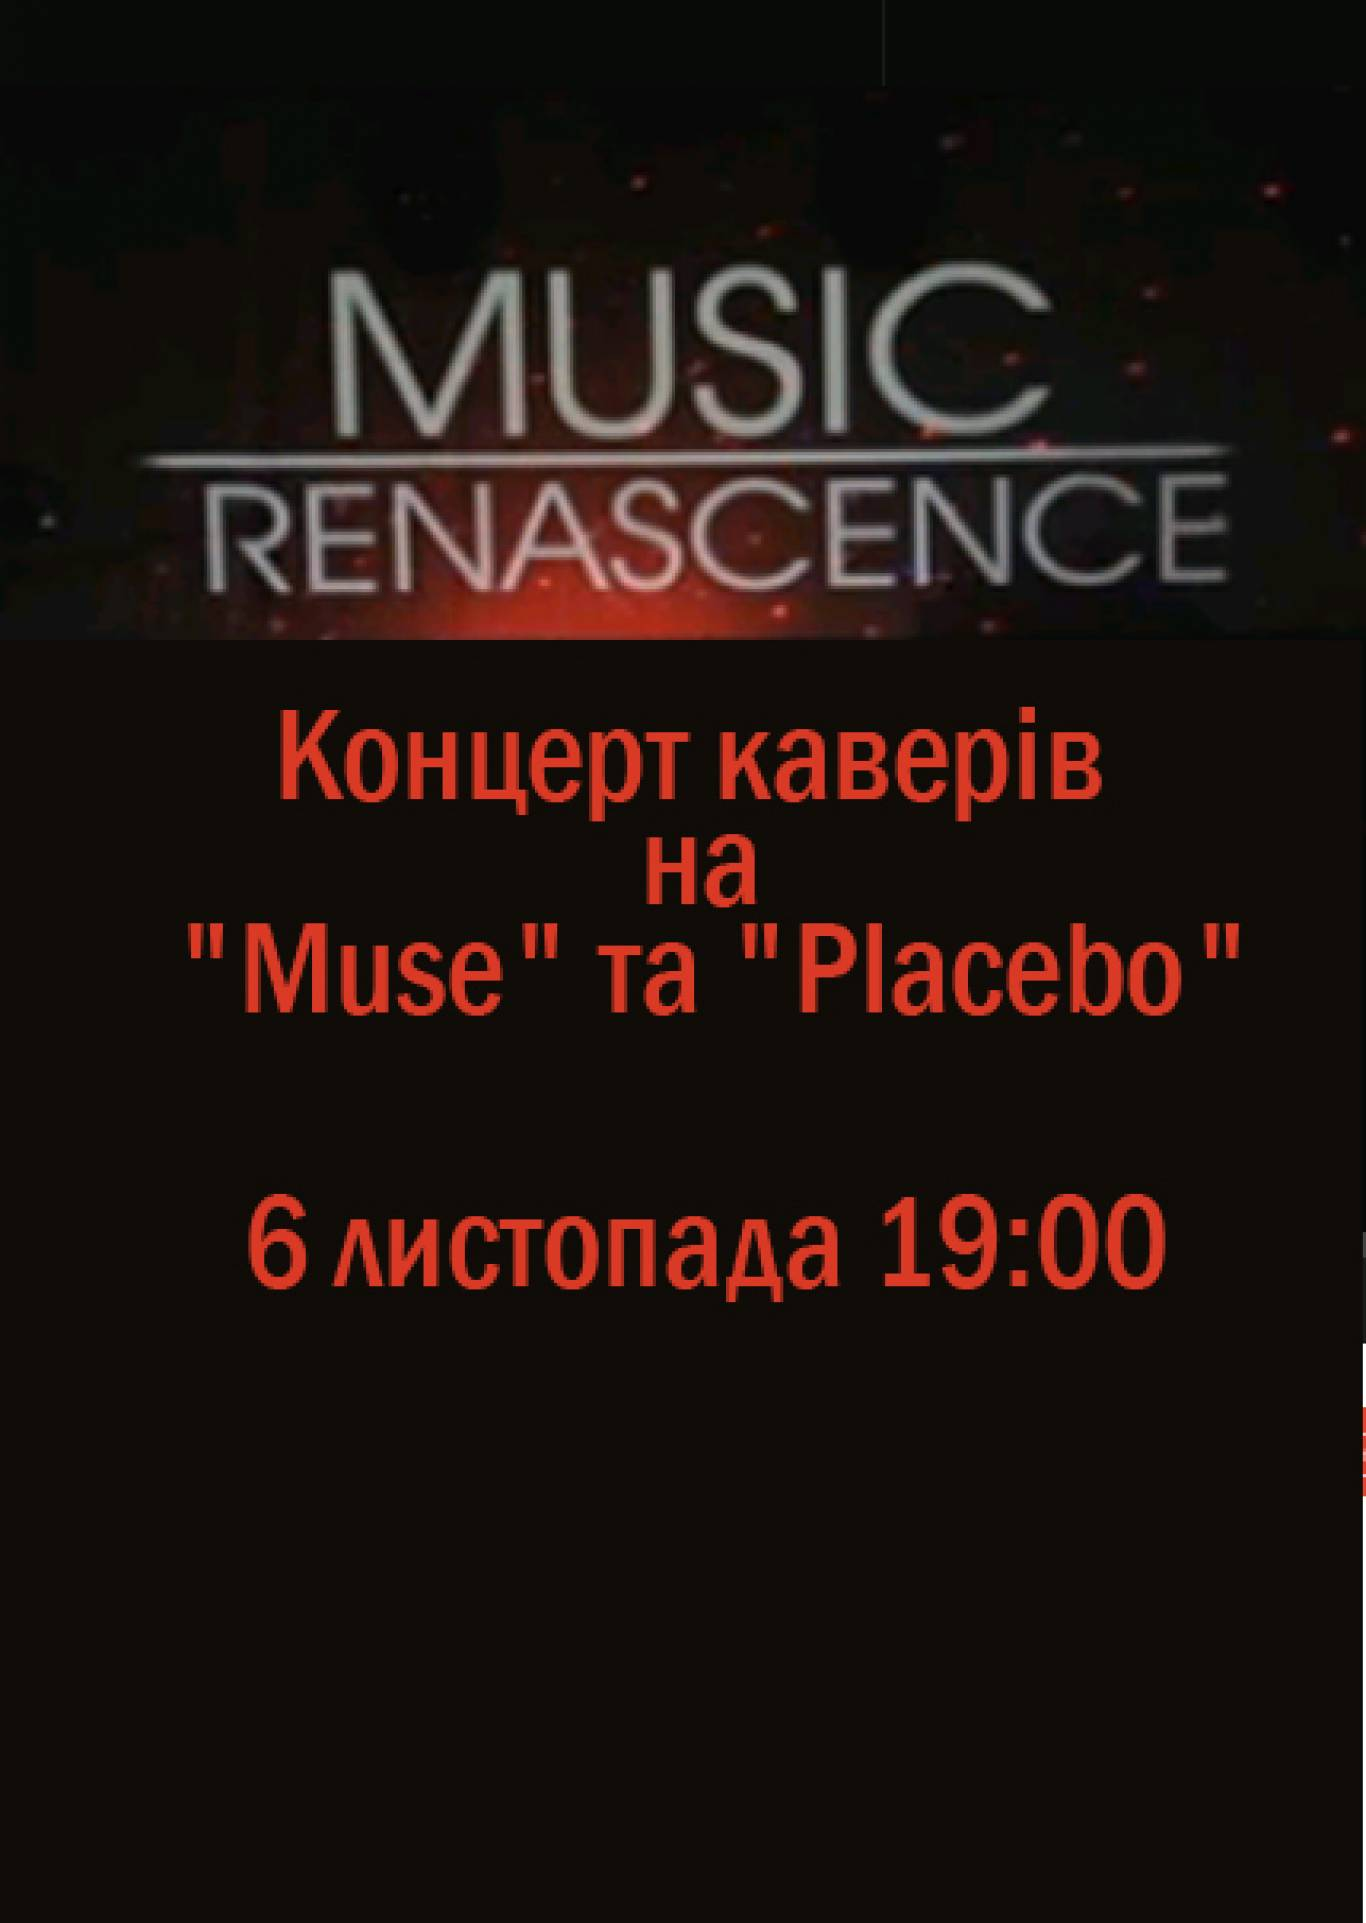 "Концерт каверів на ""Muse"" та ""Placebo"" від ""Music Renascence"""